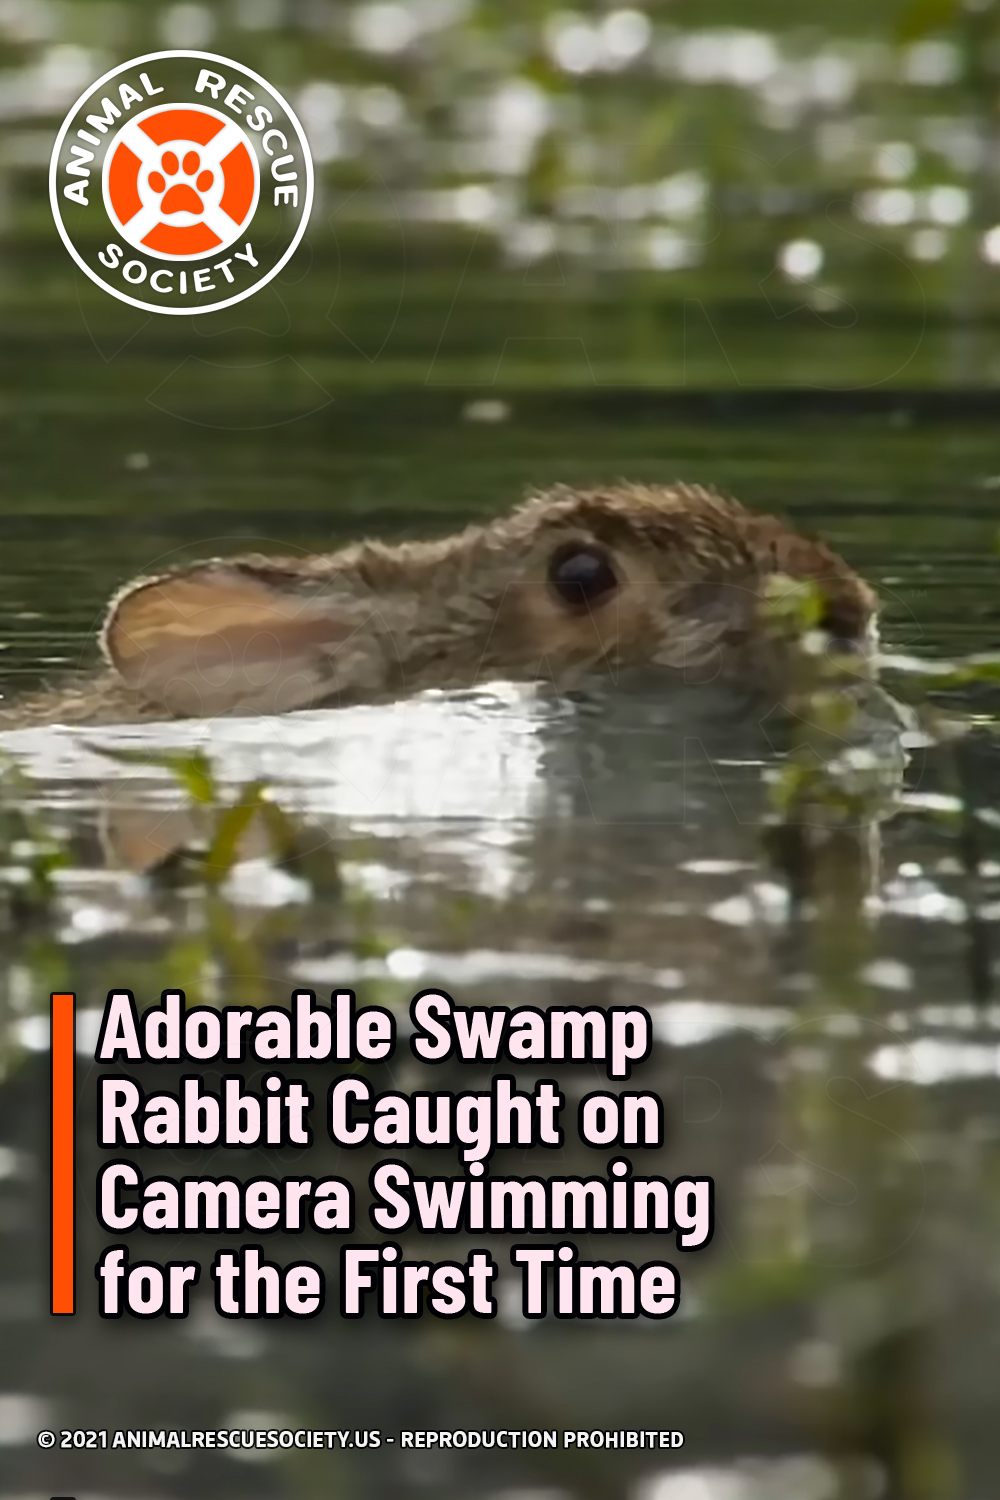 Adorable Swamp Rabbit Caught on Camera Swimming for the First Time